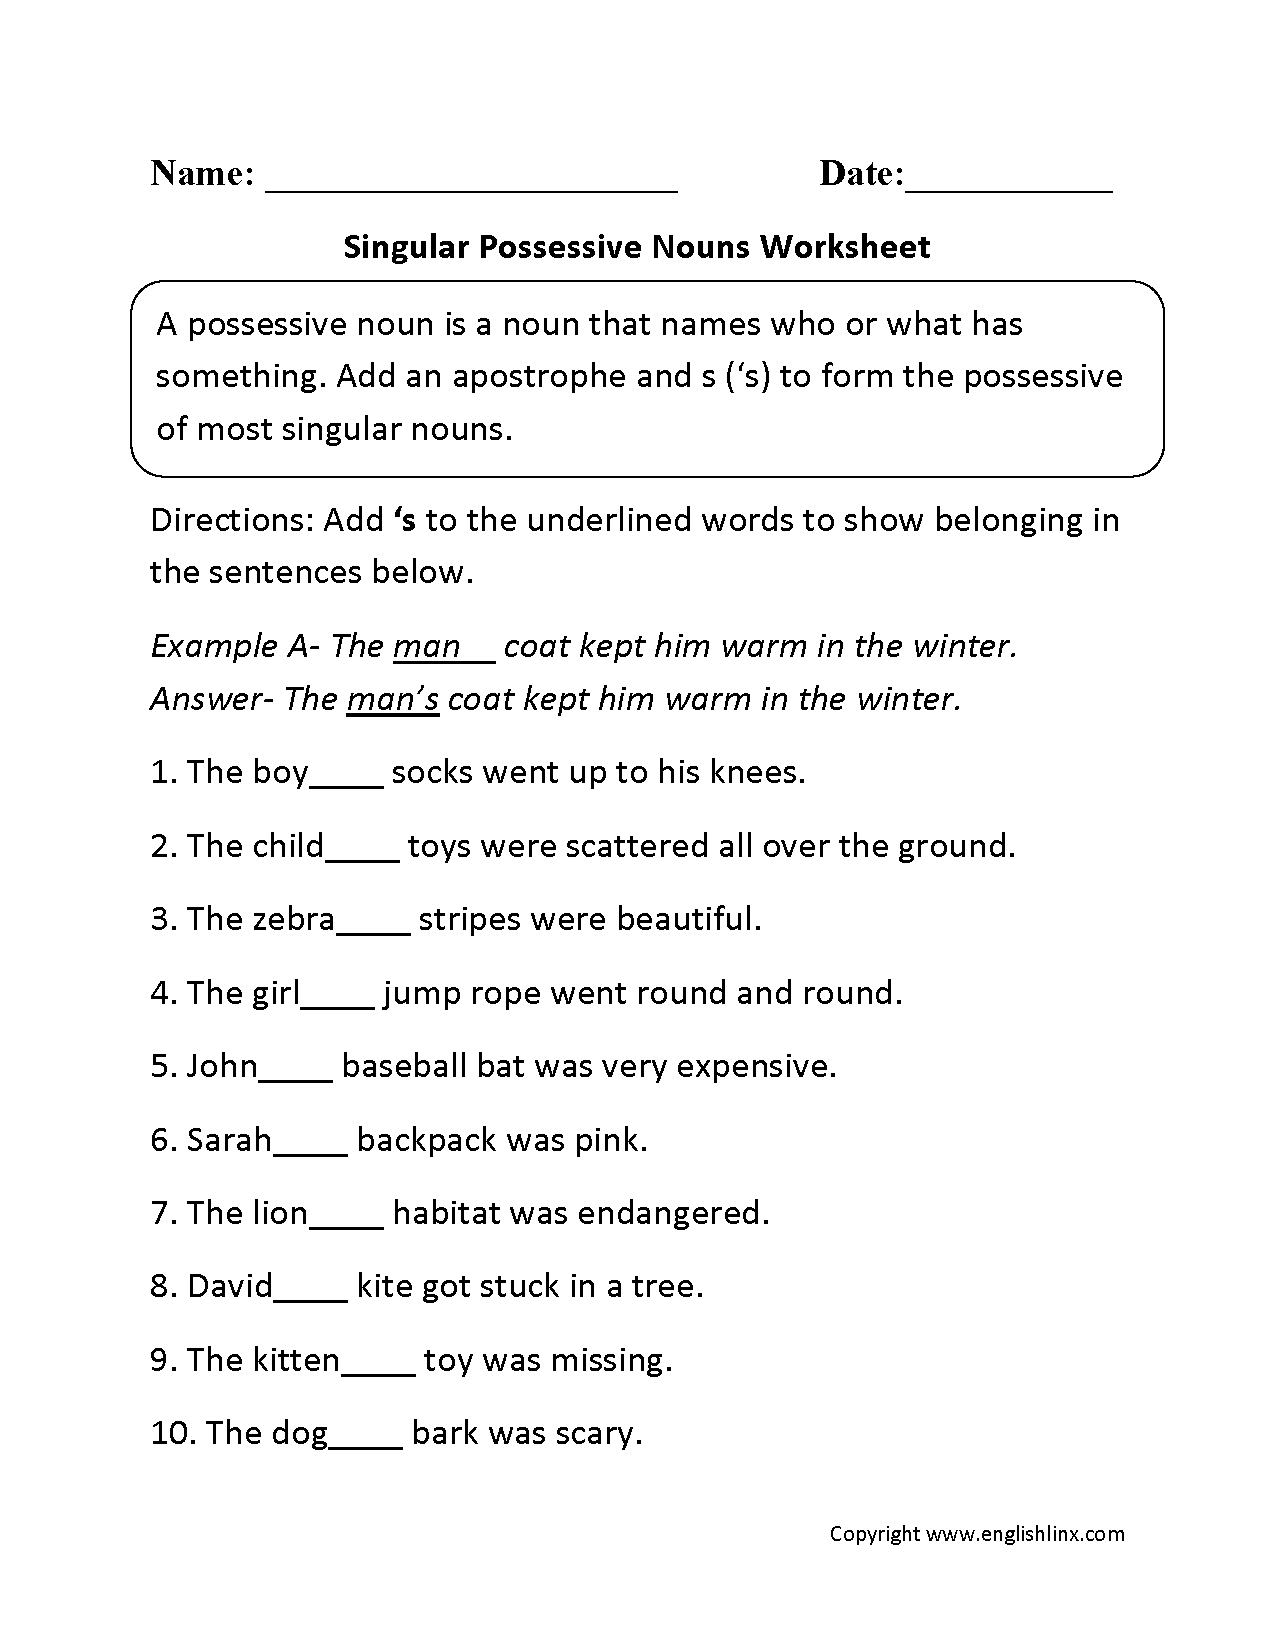 Aldiablosus  Pleasant Nouns Worksheets  Possessive Nouns Worksheets With Gorgeous Possessive Nouns Worksheets With Enchanting Algebra Patterns Worksheets Also Be The Teacher Worksheets In Addition Tally Table Worksheets And Time For Time Worksheets As Well As Perimeter Worksheets Grade  Additionally More And Most Adjectives Worksheets From Englishlinxcom With Aldiablosus  Gorgeous Nouns Worksheets  Possessive Nouns Worksheets With Enchanting Possessive Nouns Worksheets And Pleasant Algebra Patterns Worksheets Also Be The Teacher Worksheets In Addition Tally Table Worksheets From Englishlinxcom